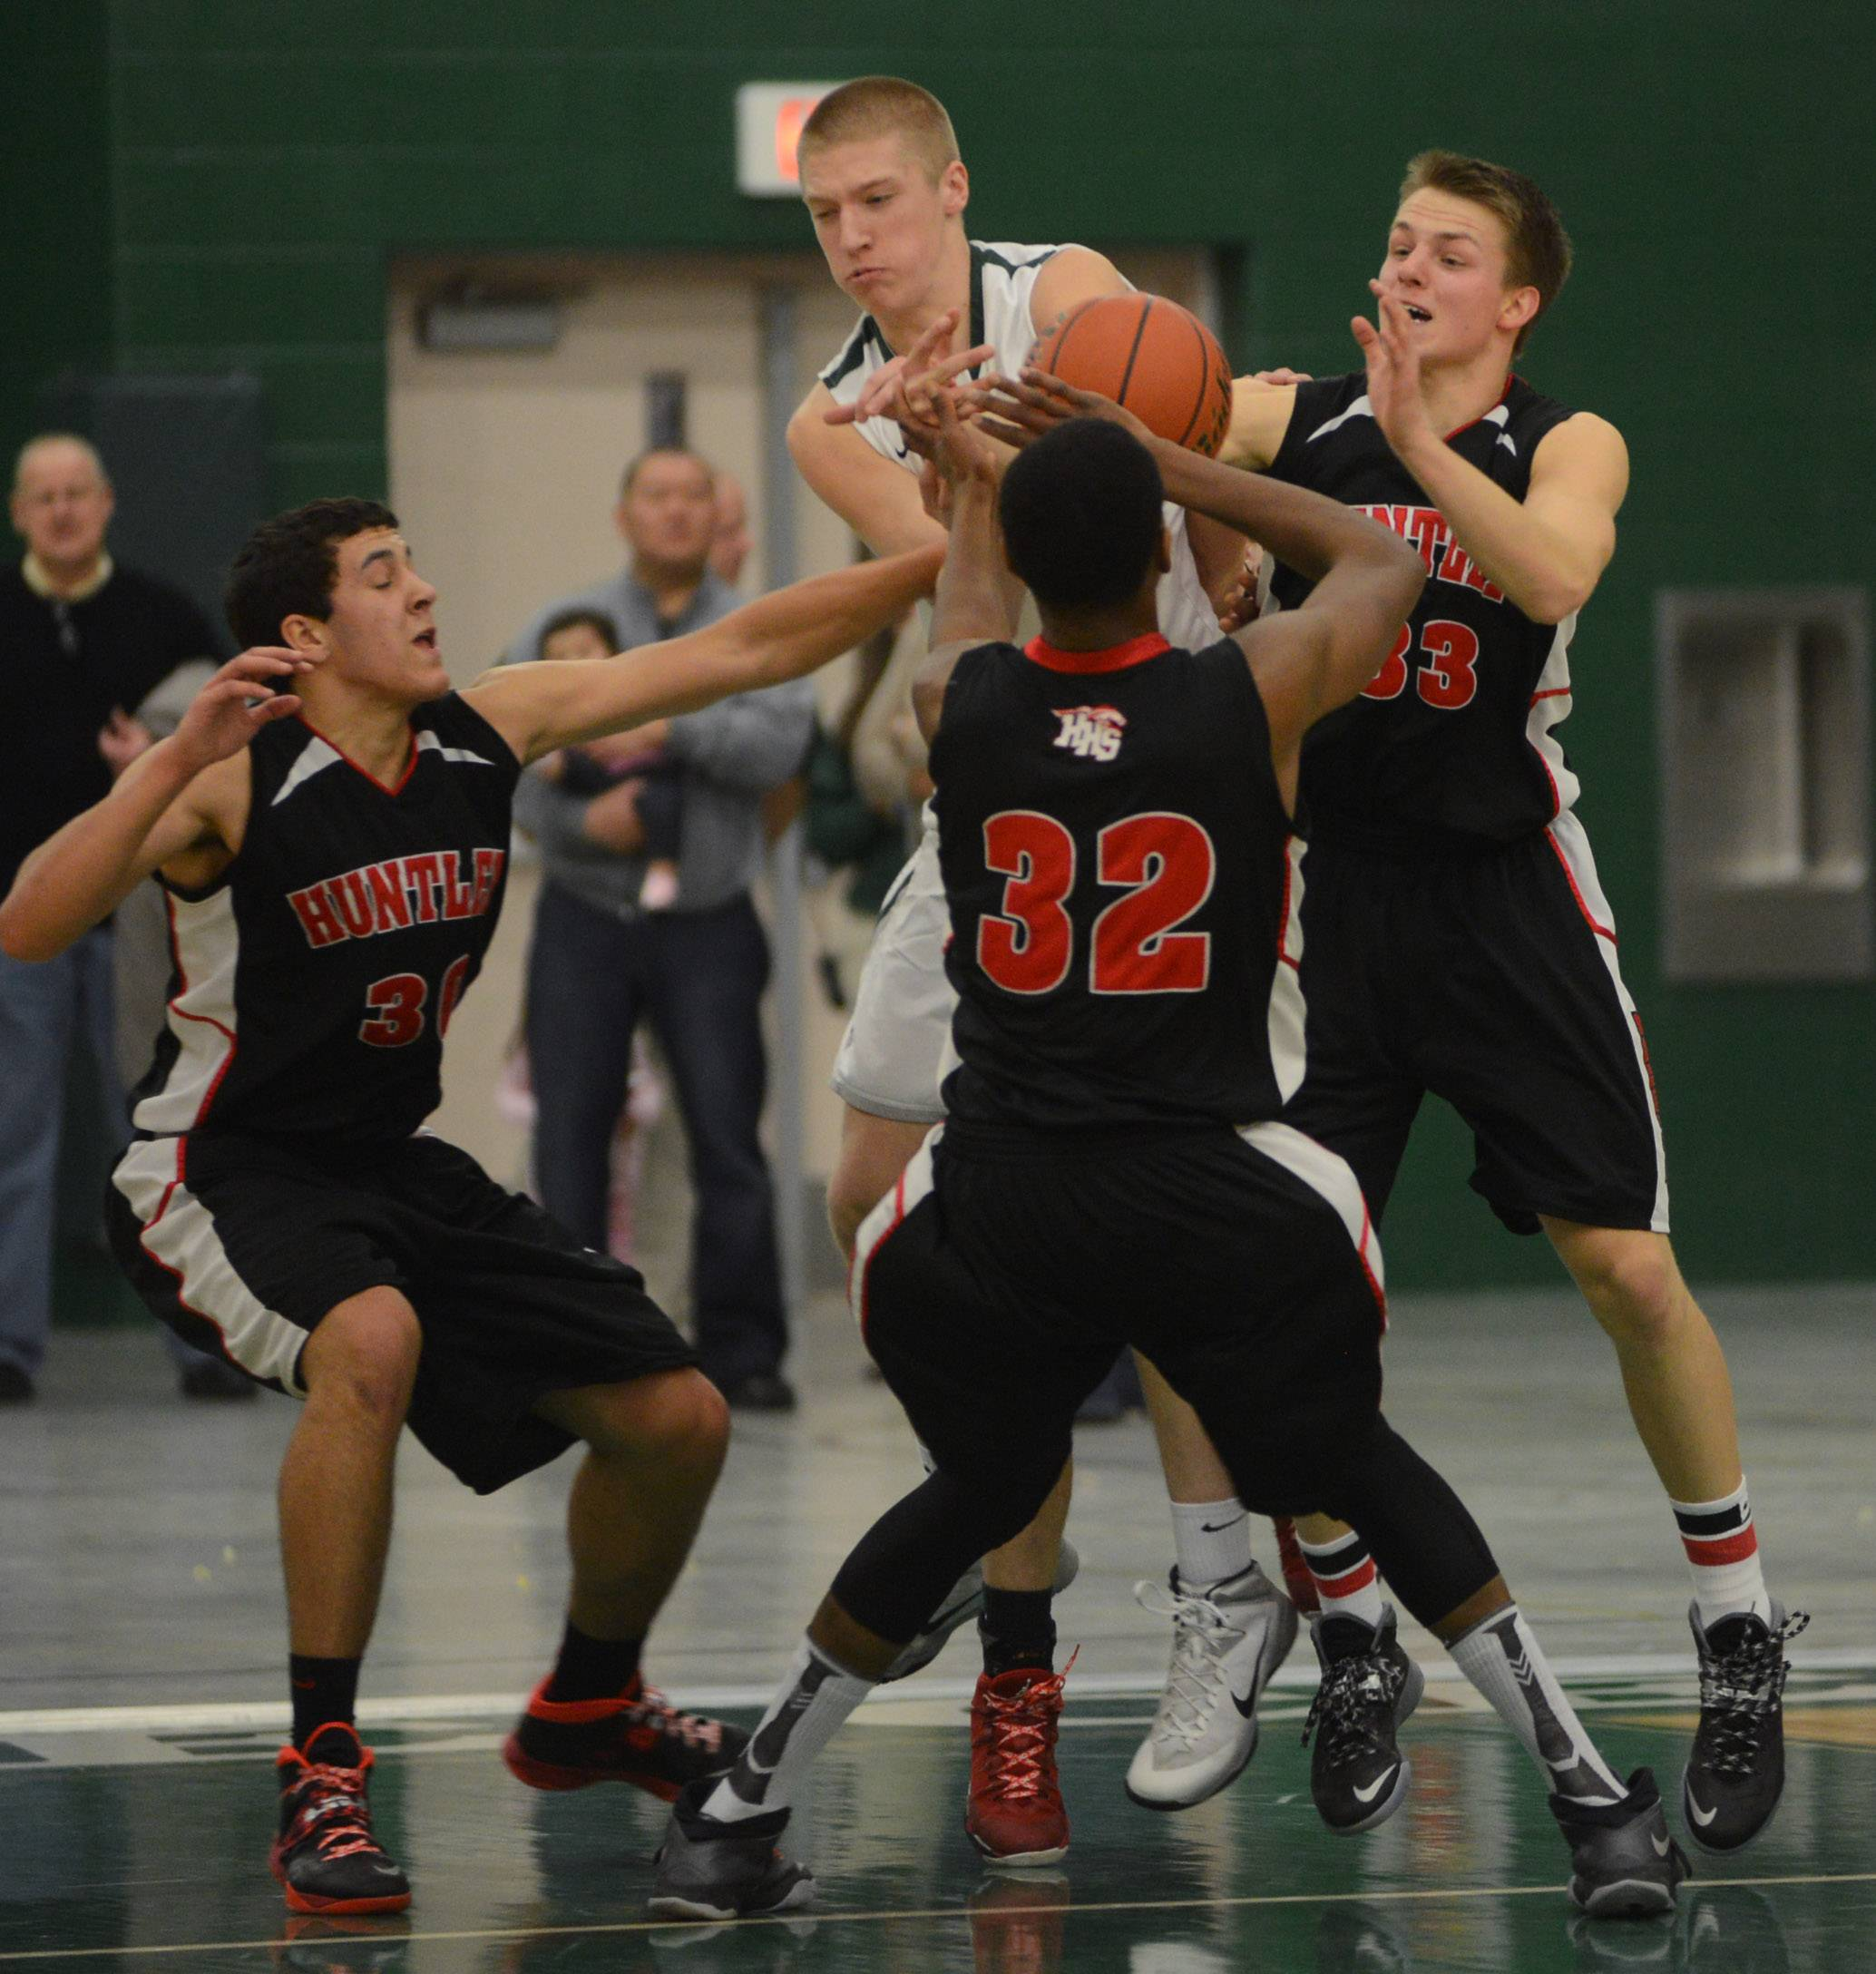 Grayslake Central's Jack Beckman, center, is pressured by a host of Huntley players Friday night in Grayslake.